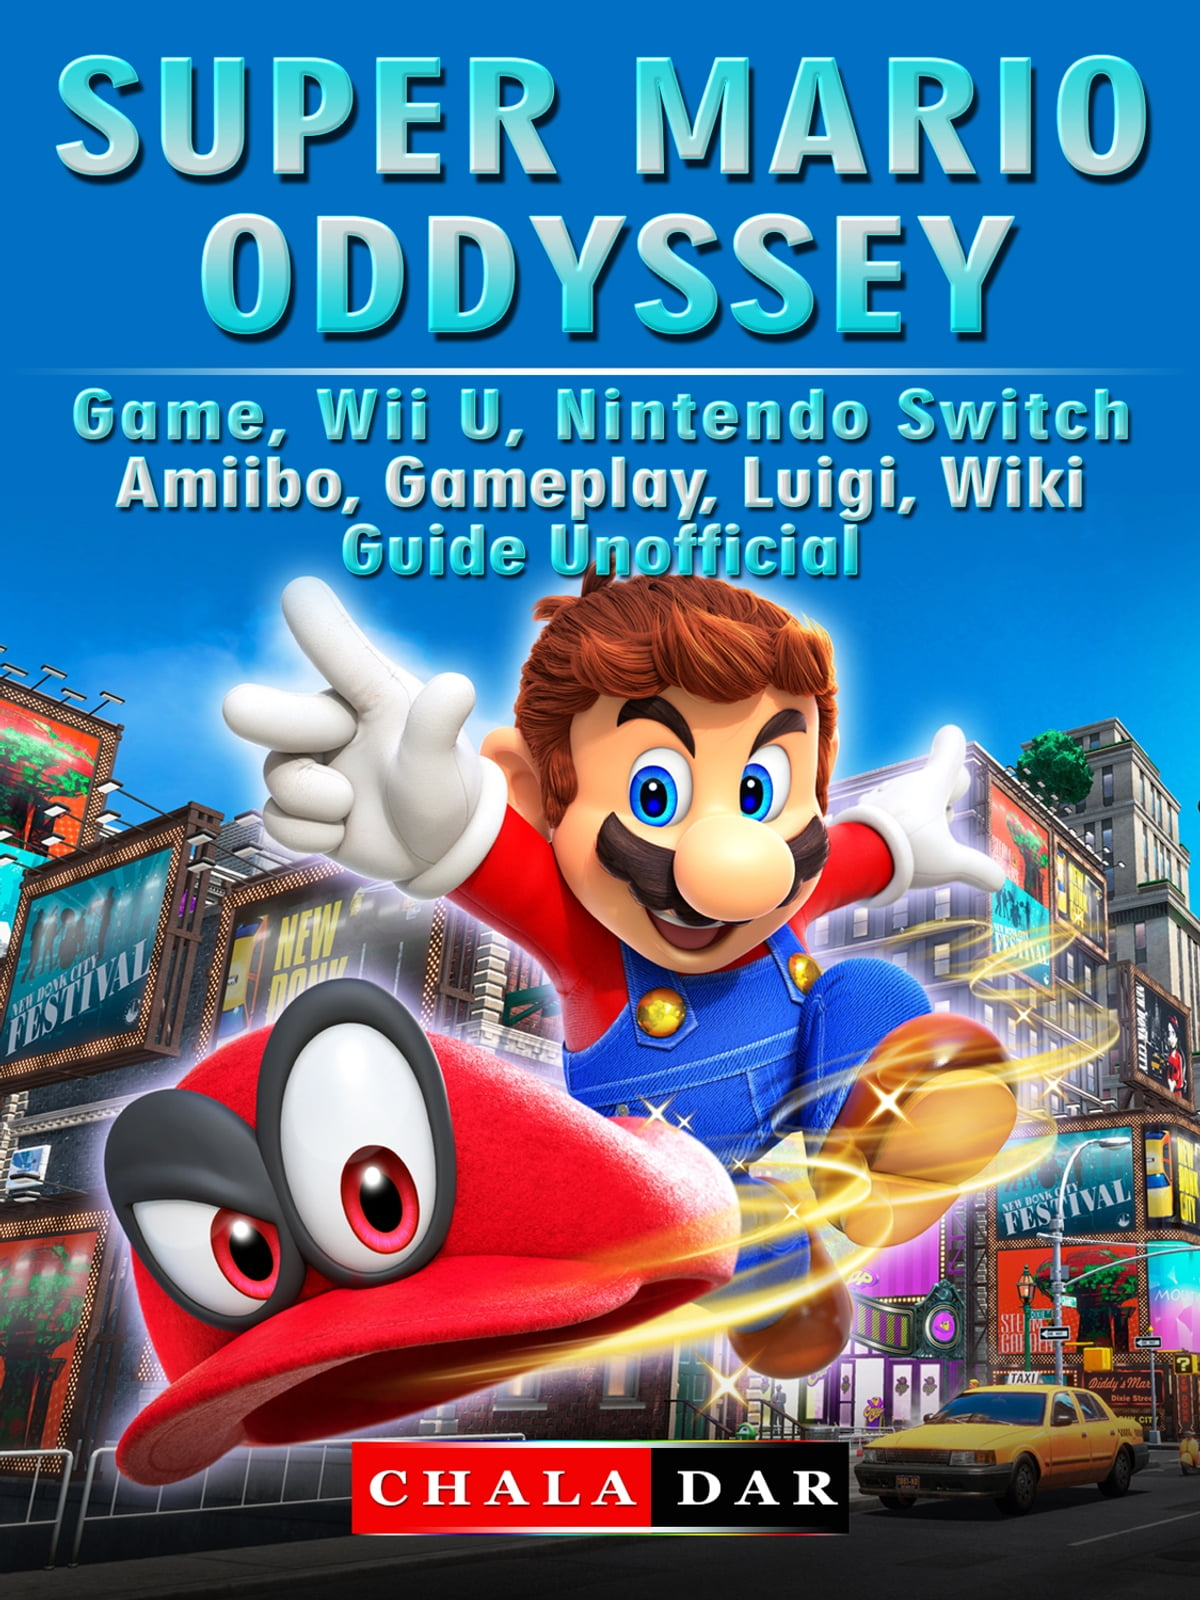 Super Mario Odyssey Game, Wii U, Nintendo Switch, Amiibo, Gameplay, Luigi,  Wiki, Guide Unofficial ebooks by Chala Dar - Rakuten Kobo